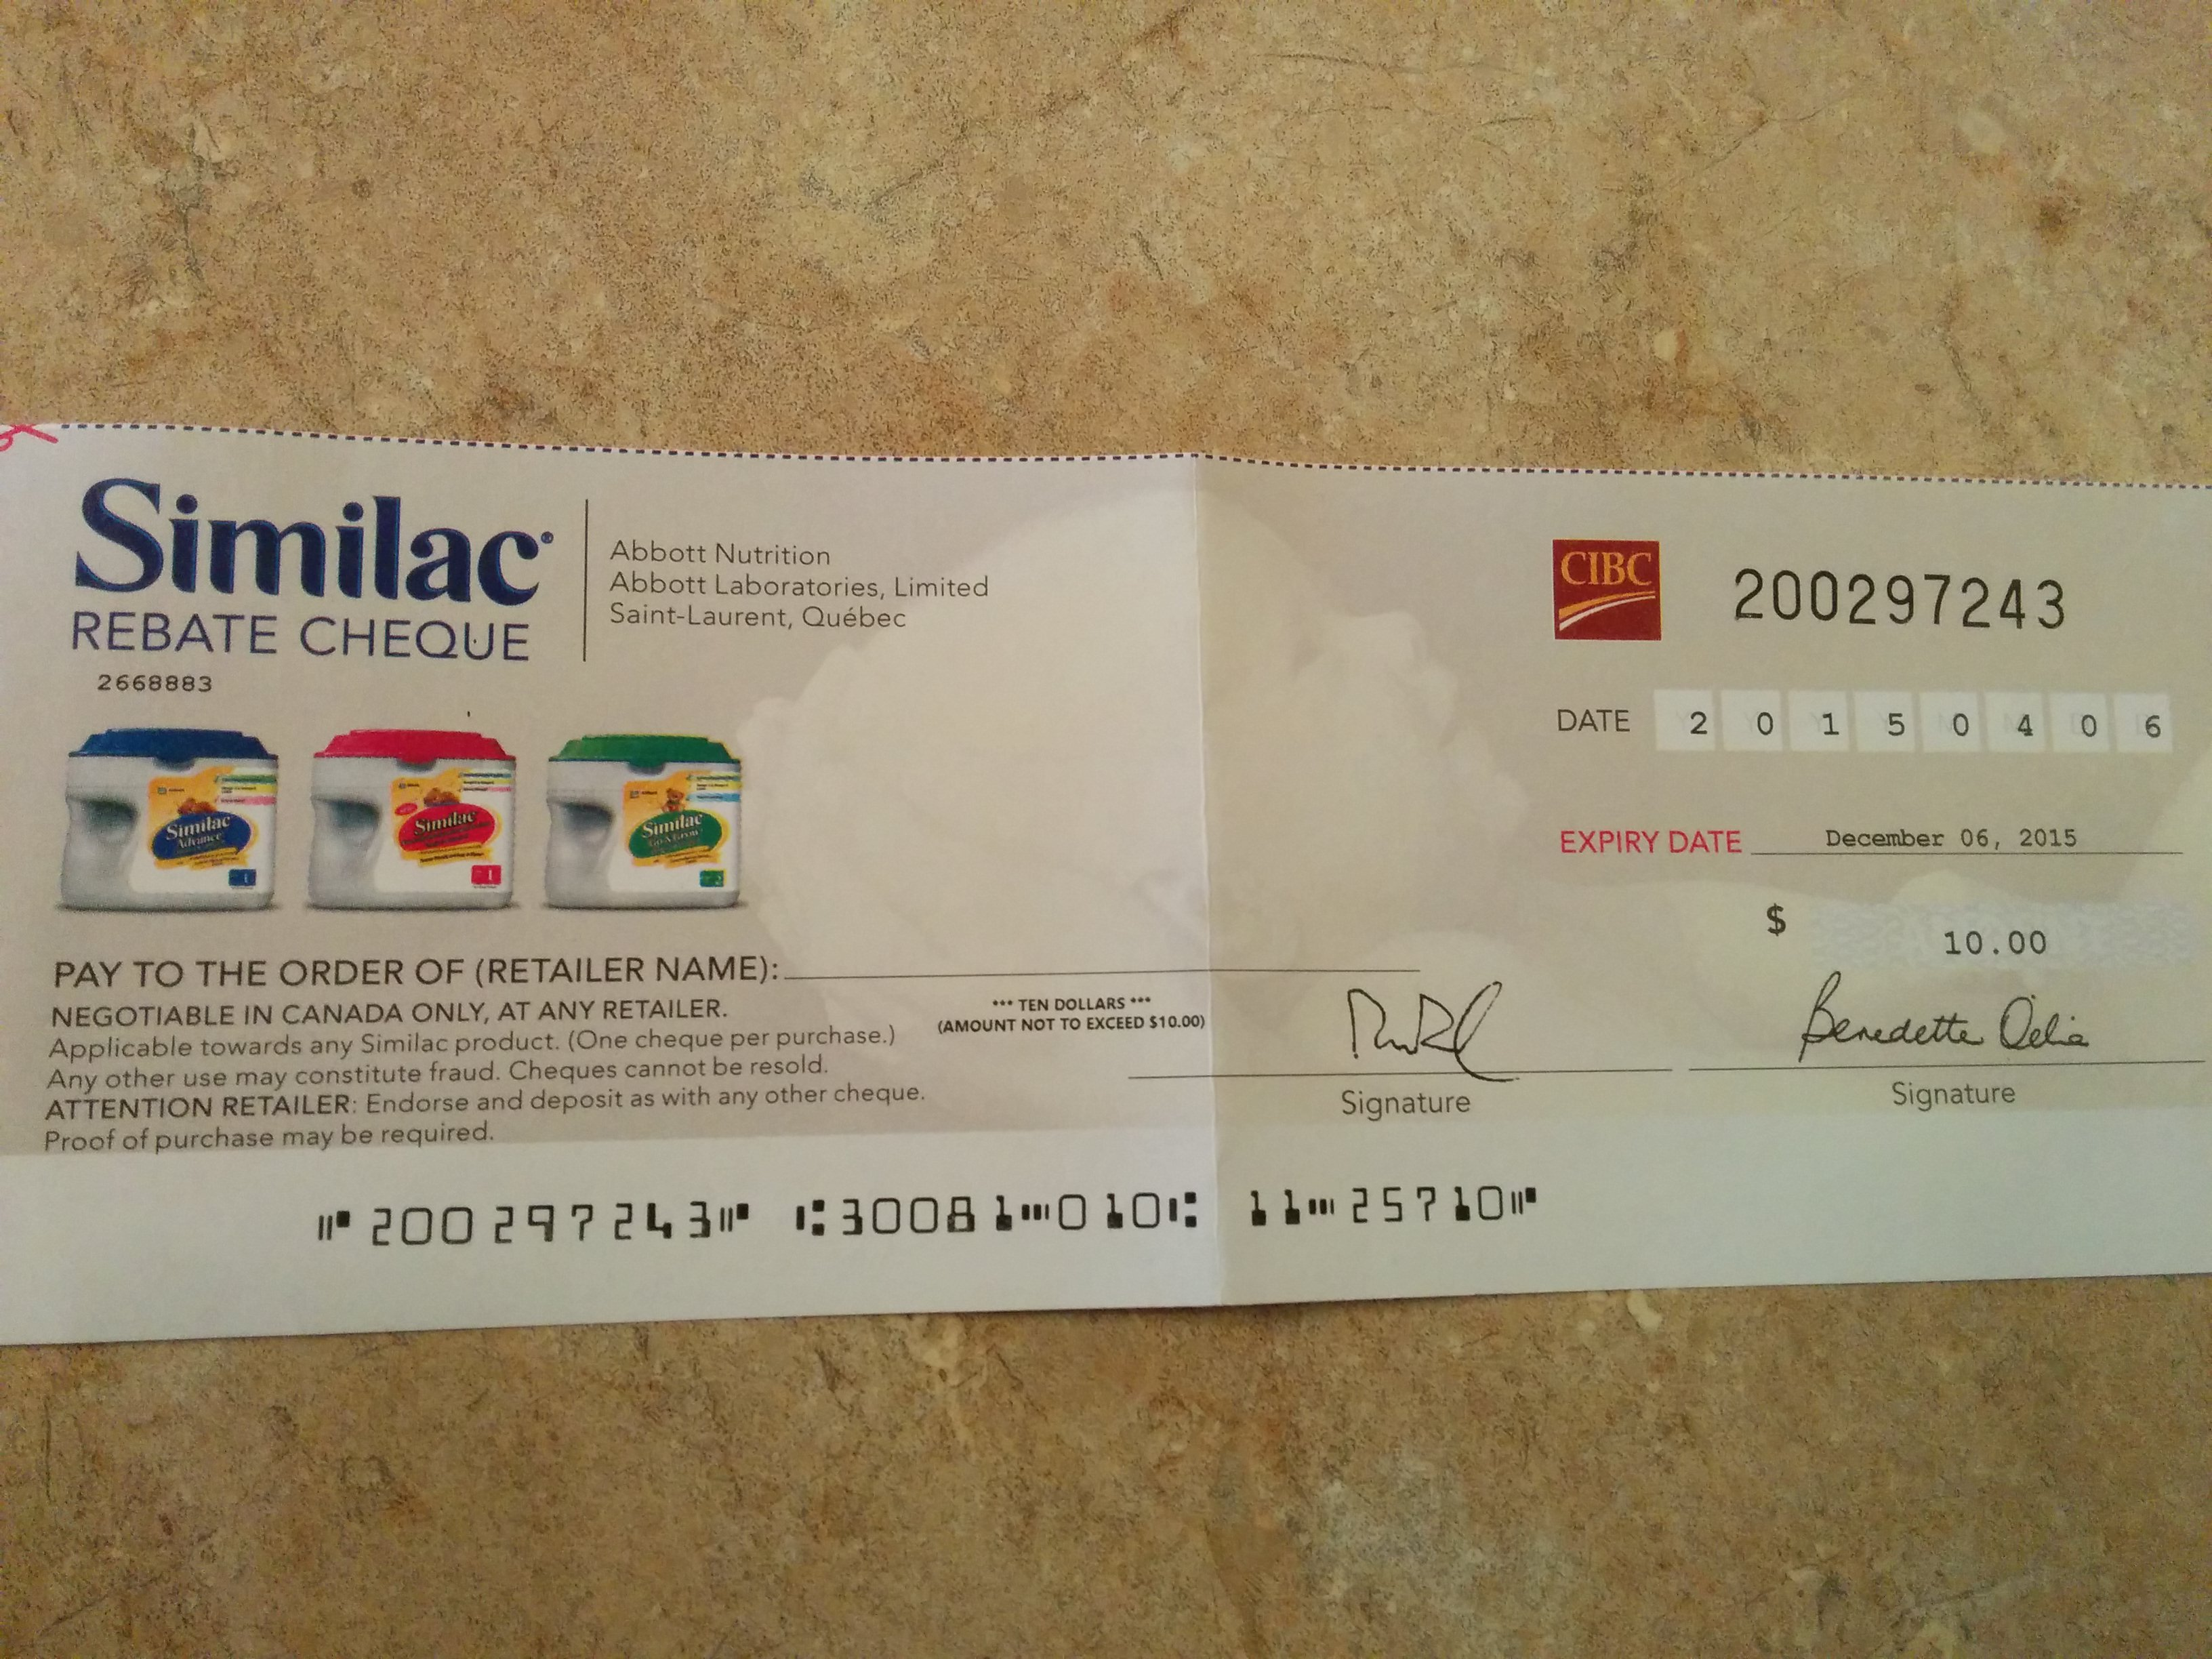 Similac cheque for trade